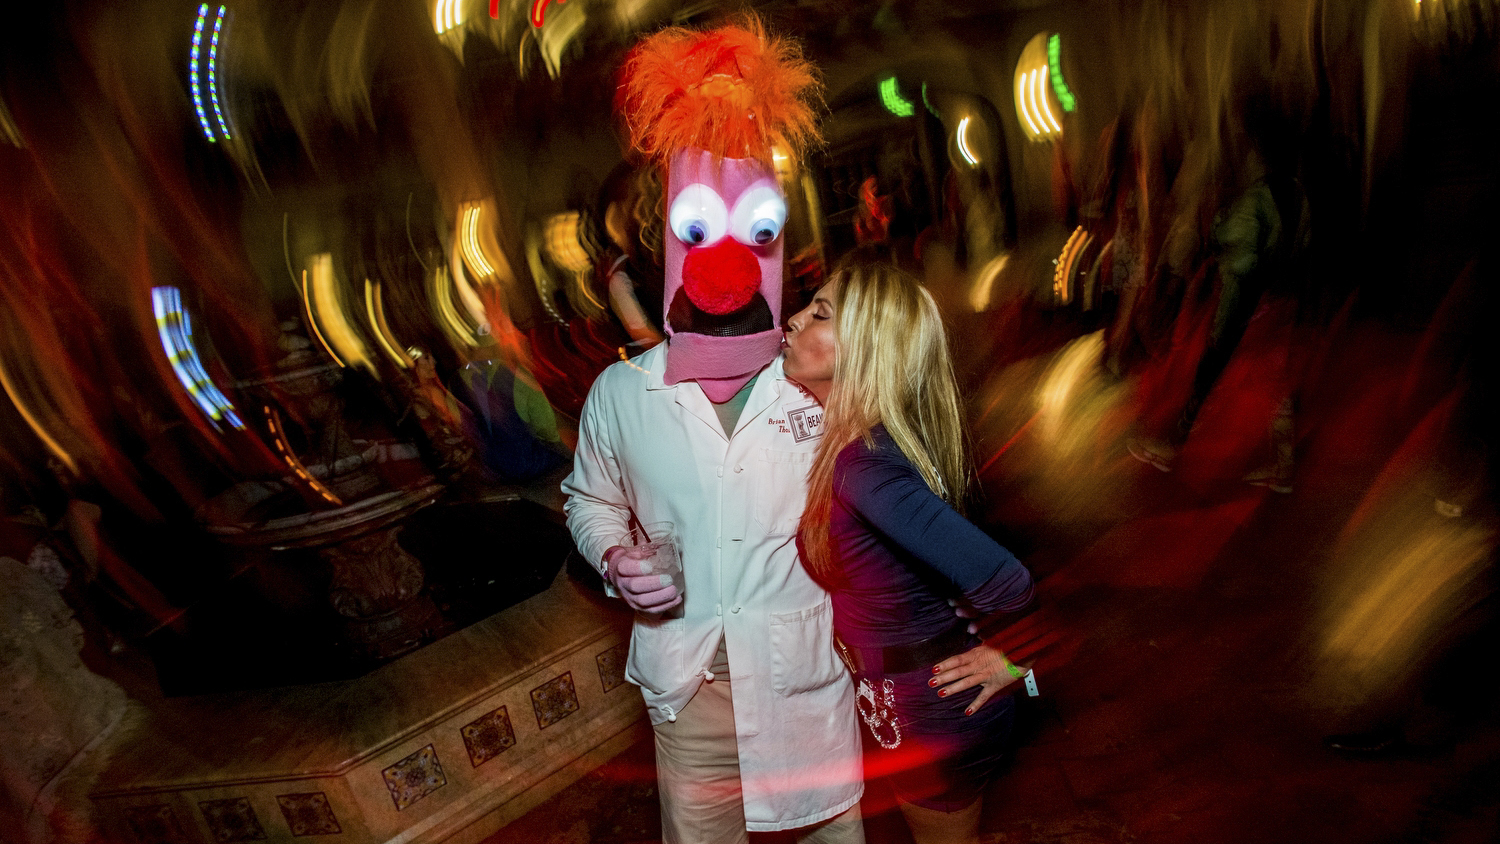 Halloween at the Roosevelt Hotel 2015 in photos